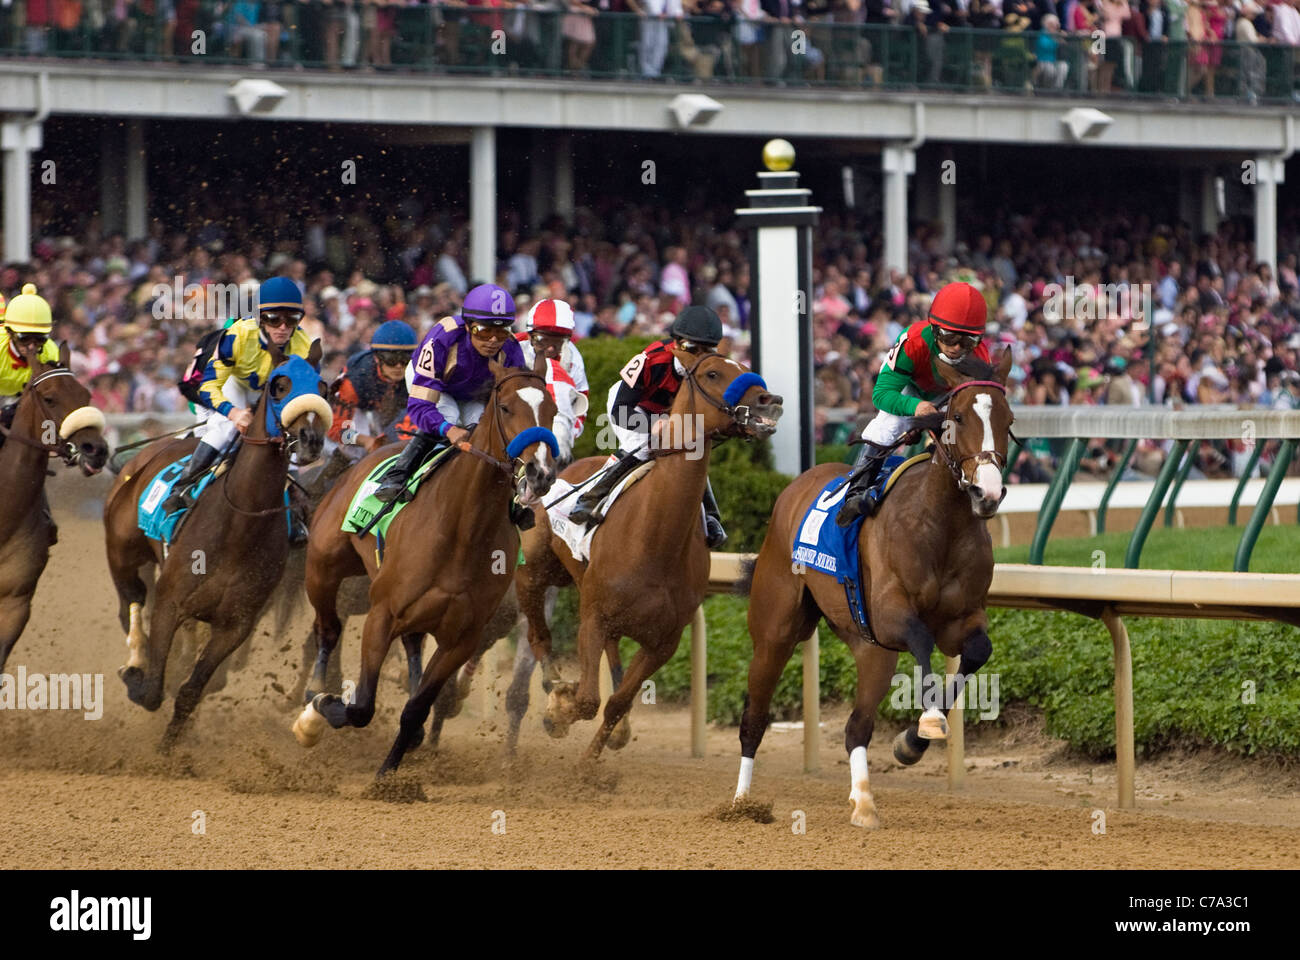 Horses Rounding the First Turn in the 2011 Kentucky Oaks at Churchill Downs in Louisville, Kentucky - Stock Image